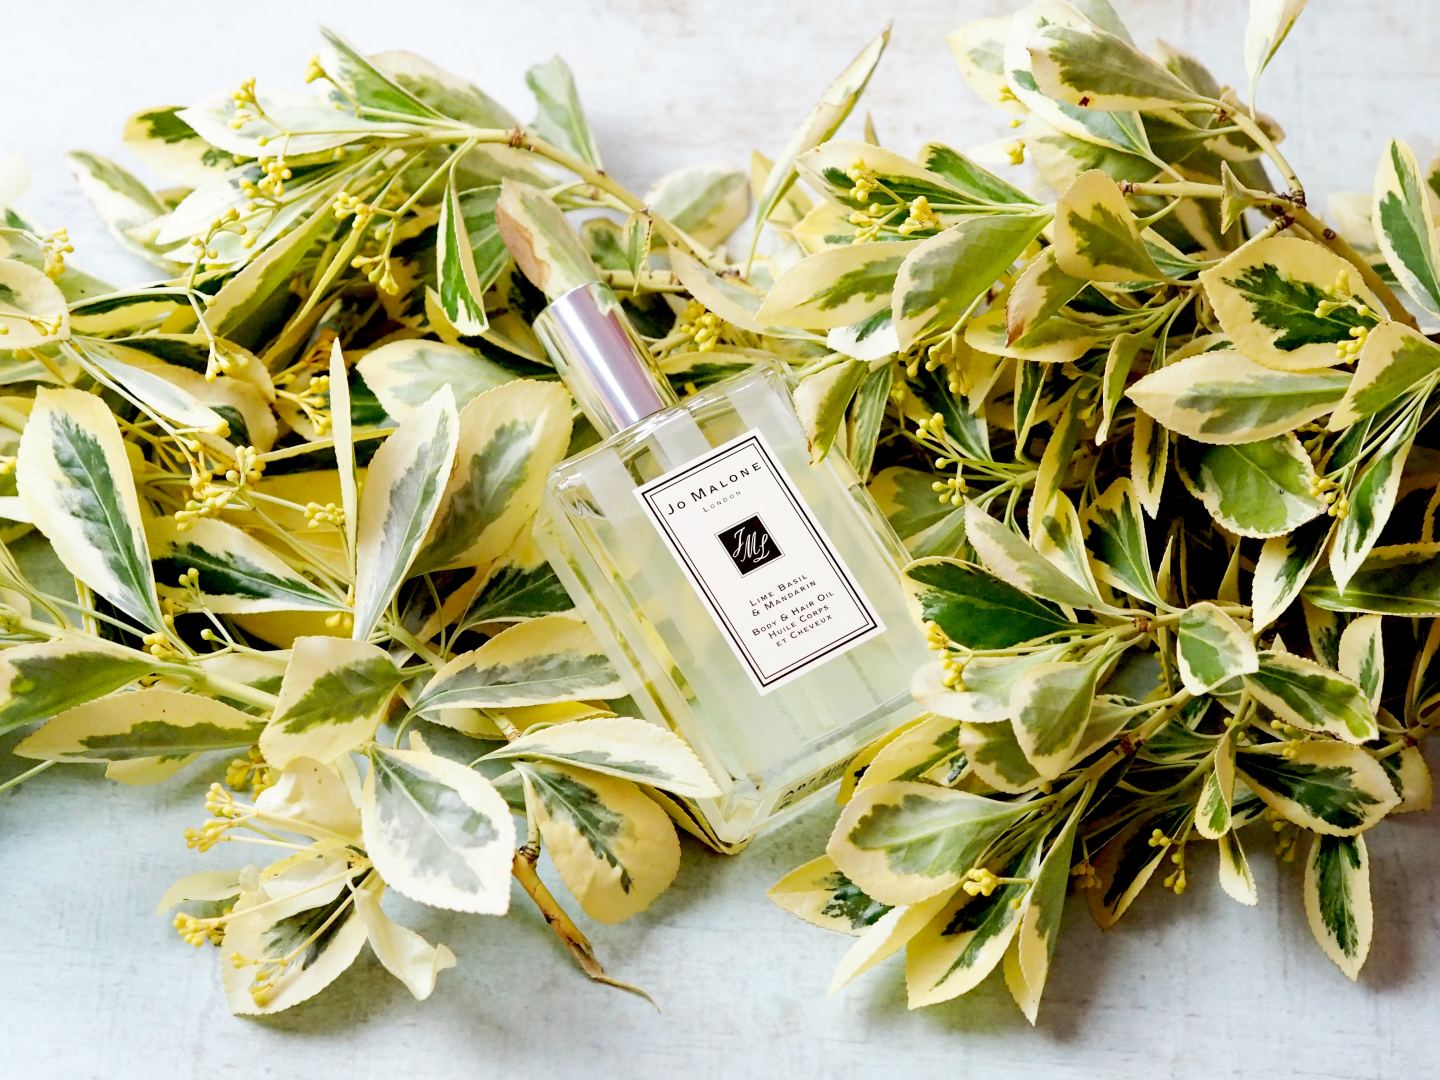 Jo Malone London Lime Basil & Mandarin Body & Hair Oil